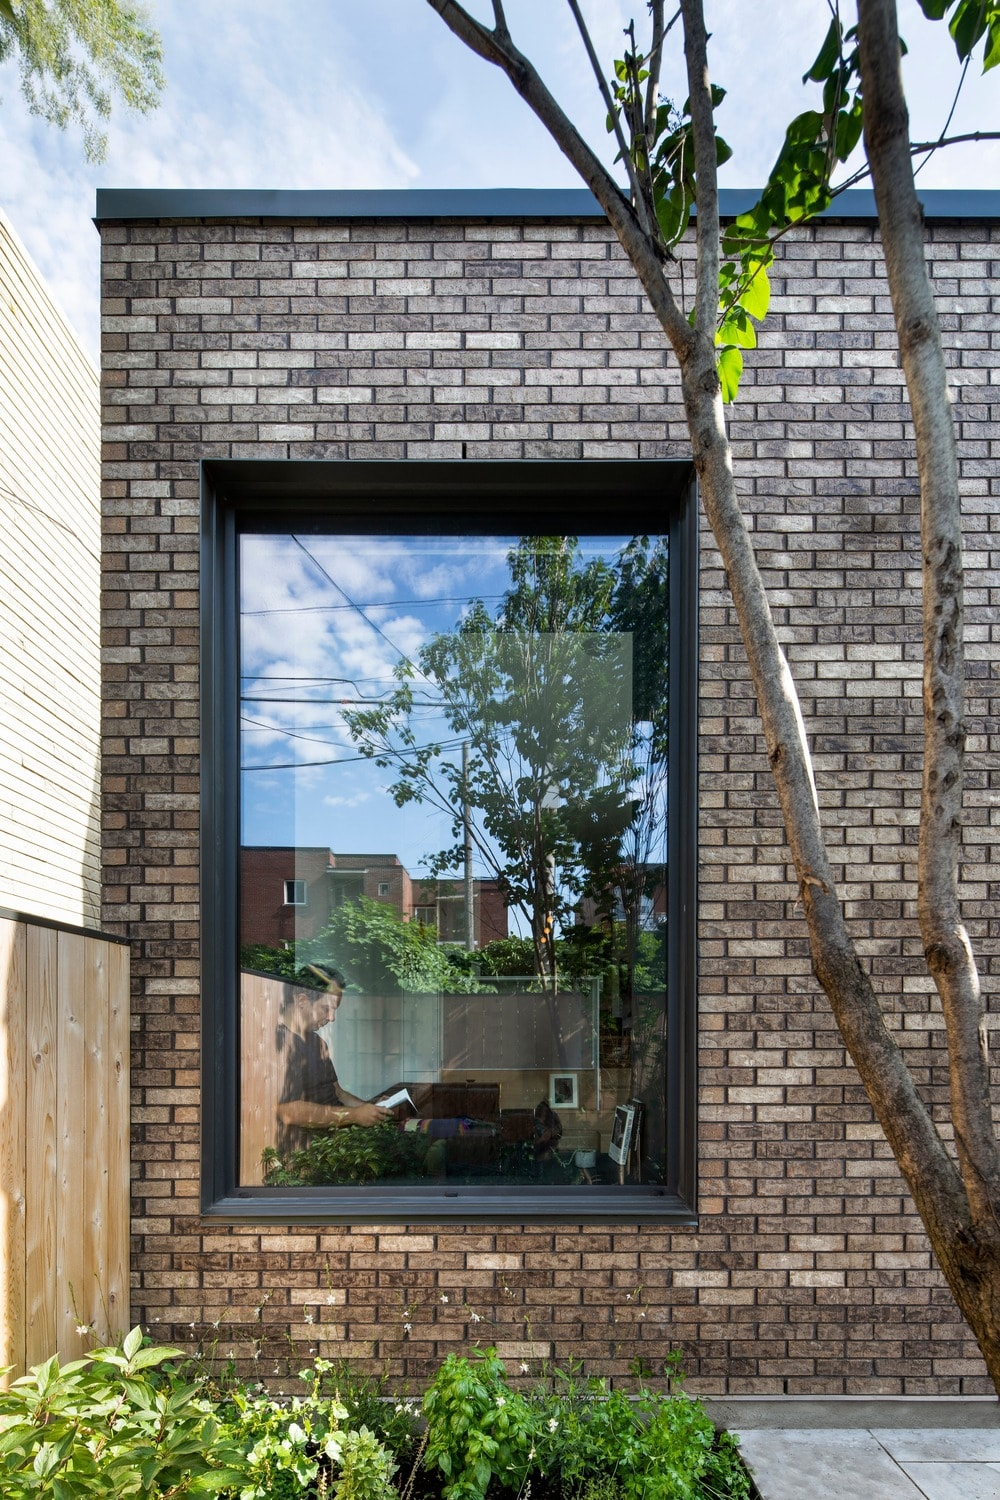 This is an external look at the large glass window that stands out against the brick exterior wall adorned with shrubs and a tree on the side.